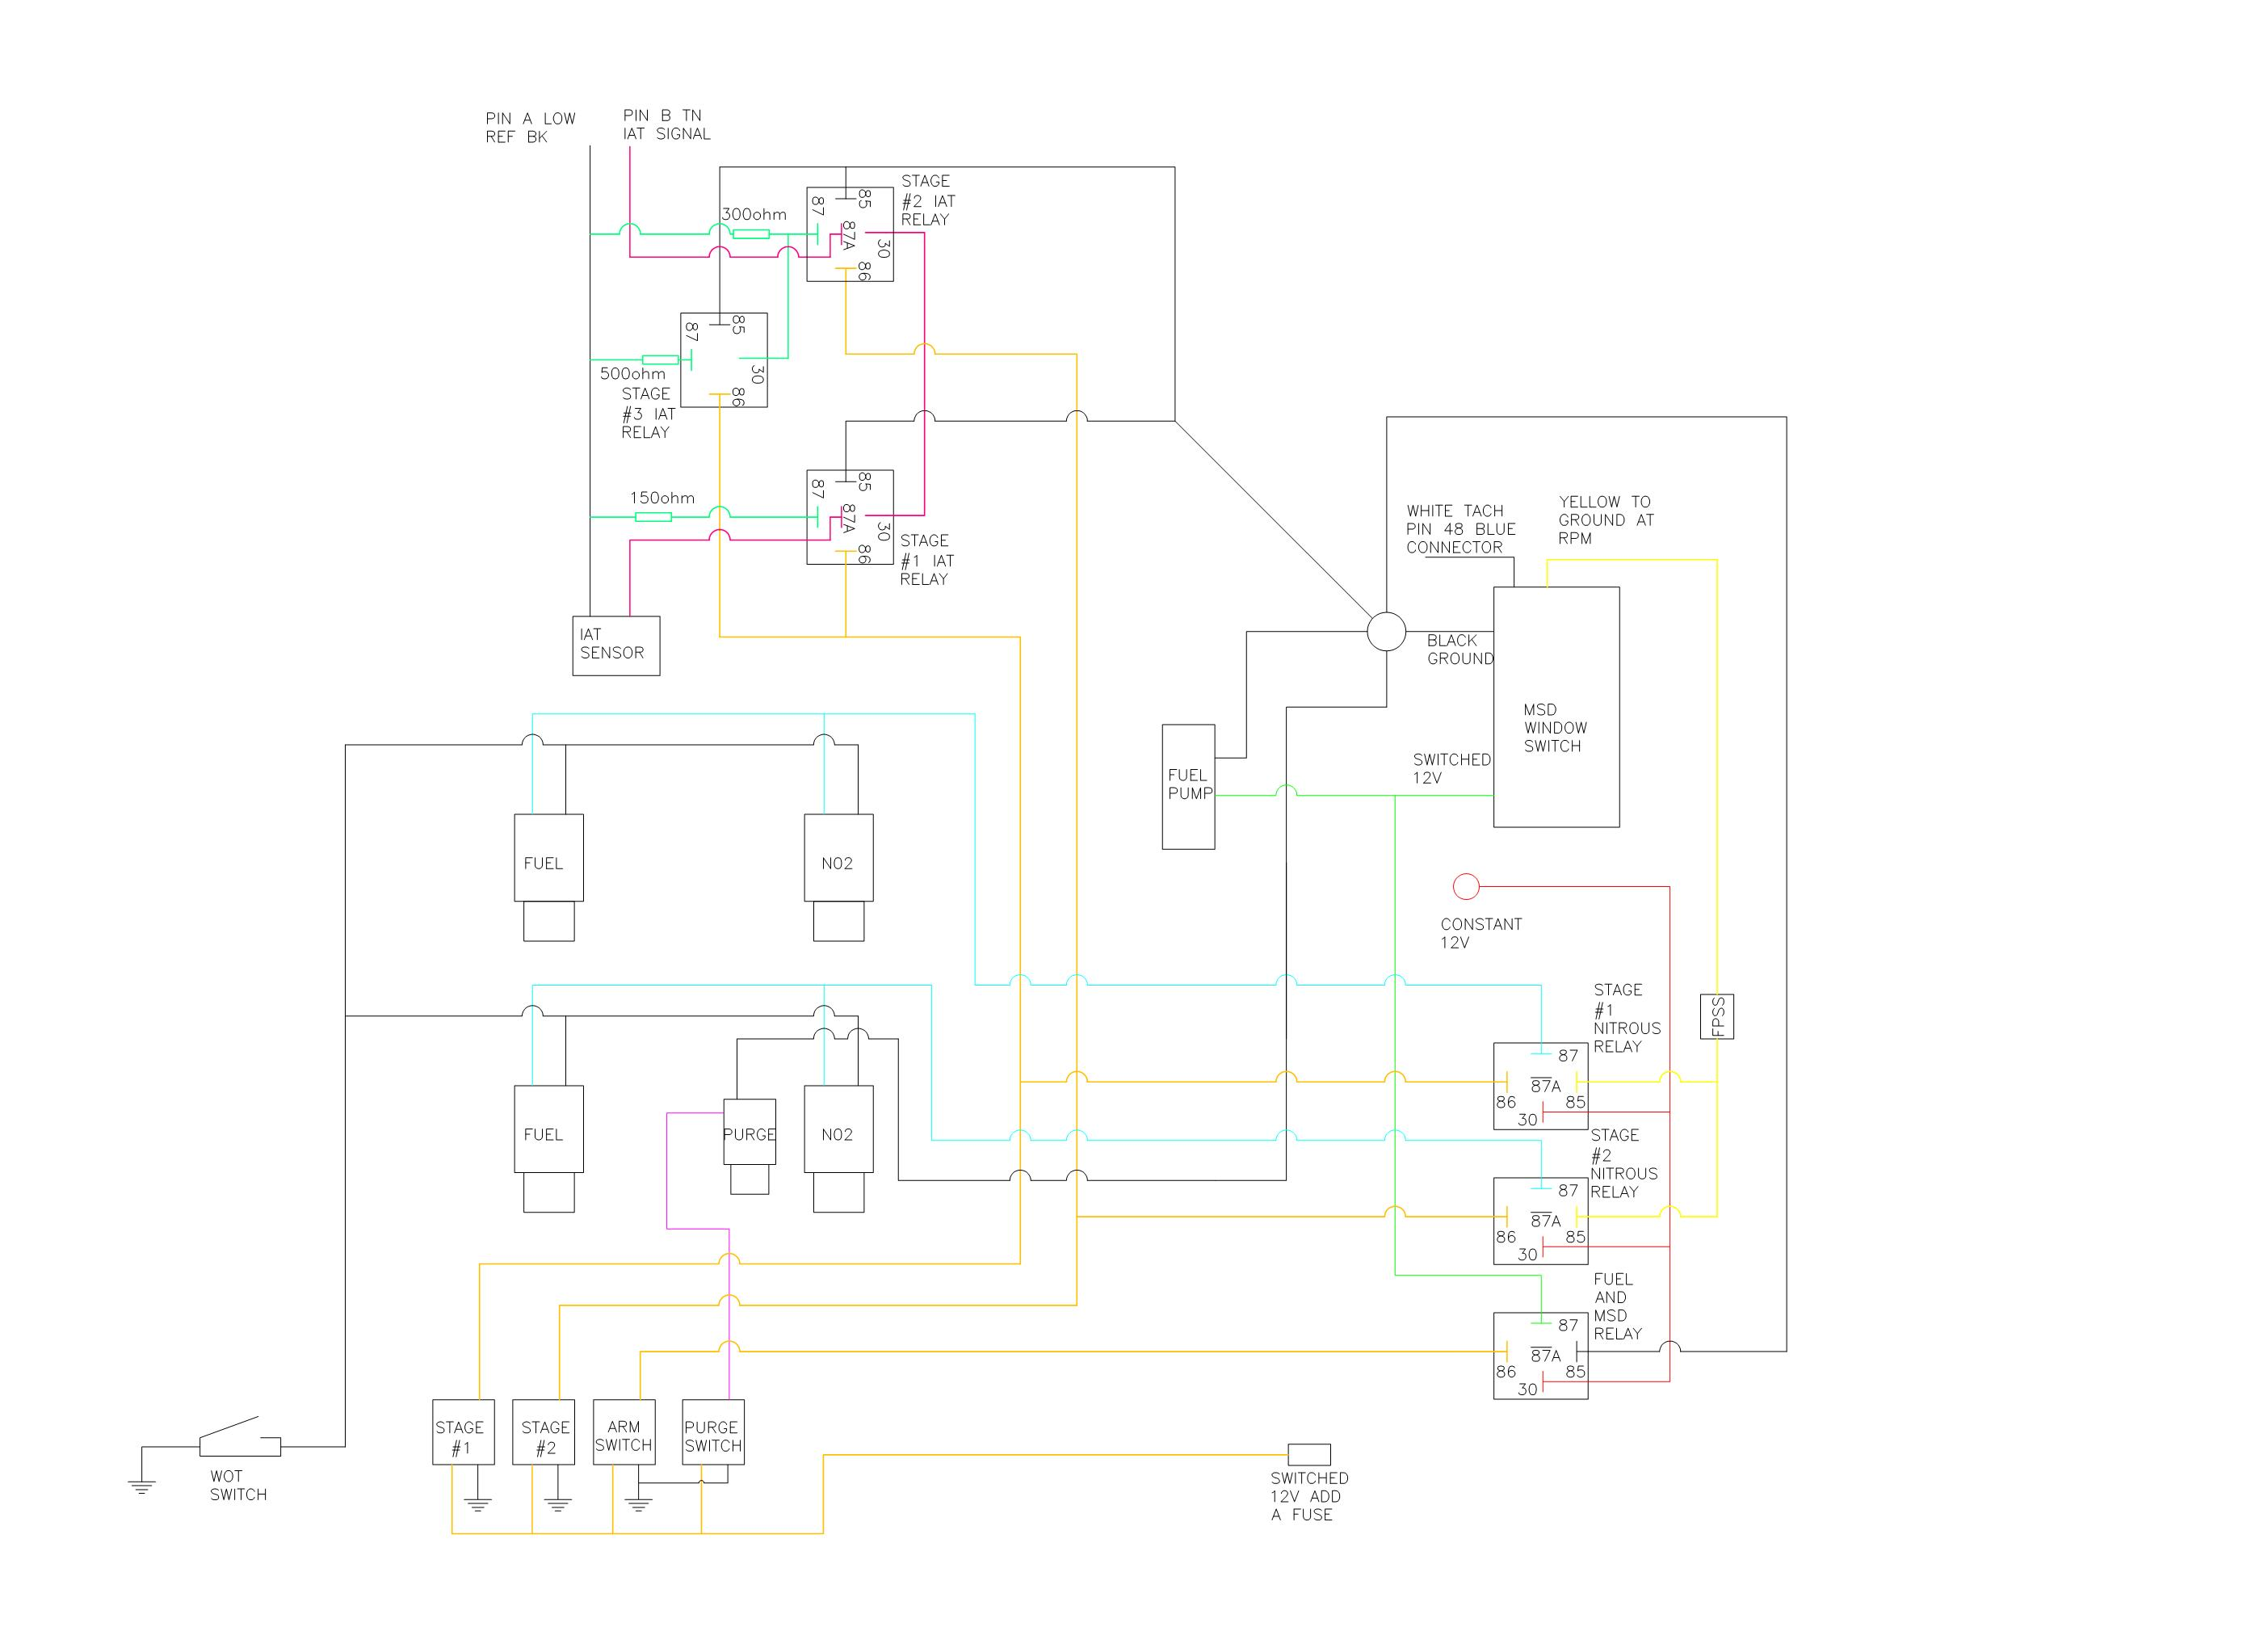 Ribu1c wiring diagram image number 3 of ribu1c wiring diagram awesome ribu1c wiring diagram images images for image wire 2040 cheapraybanclubmaster Choice Image